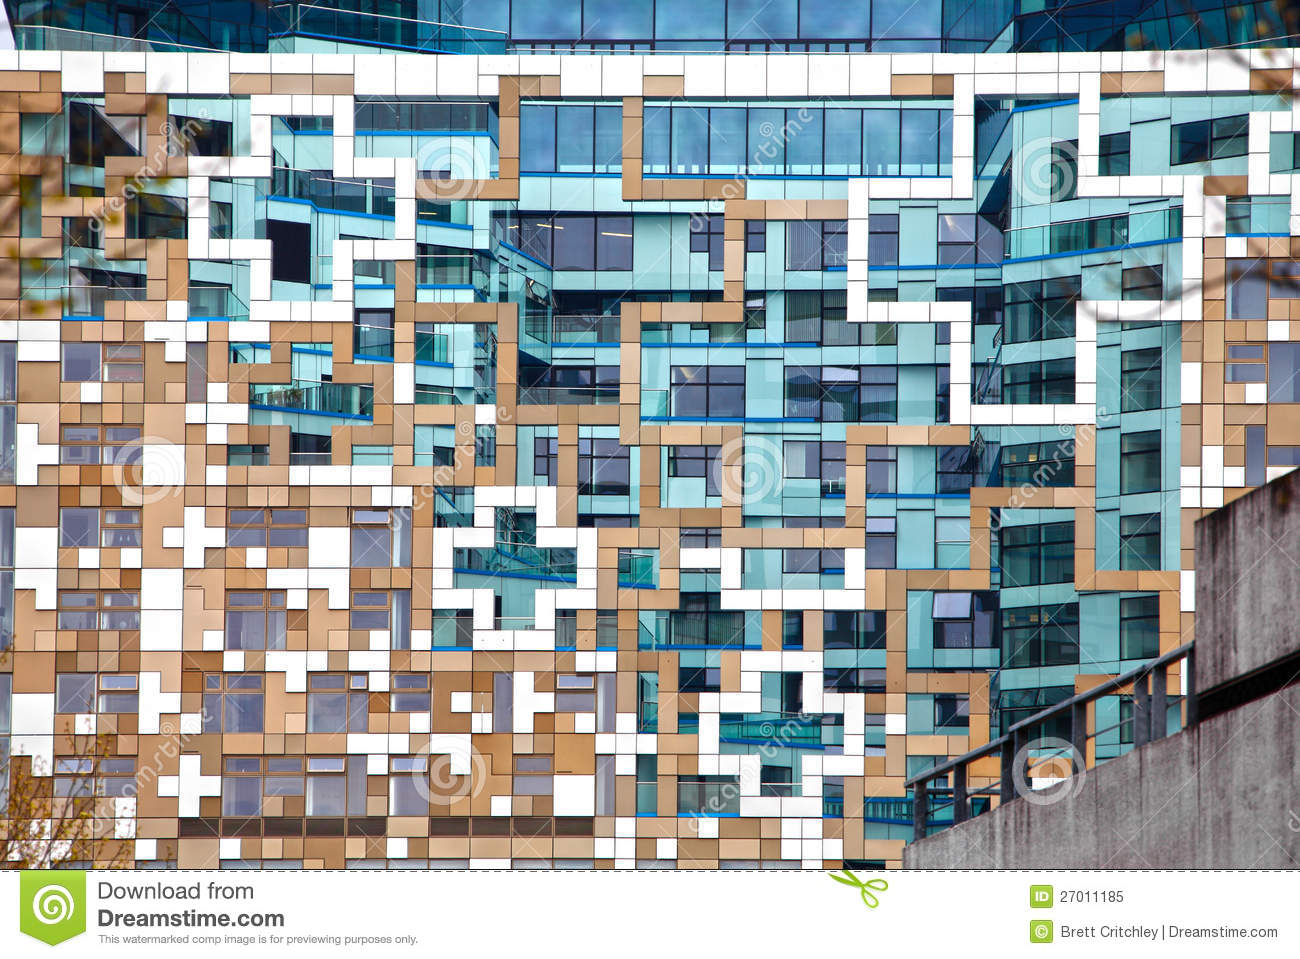 http://thumbs.dreamstime.com/z/modern-contemporary-architecture-facade-27011185.jpg